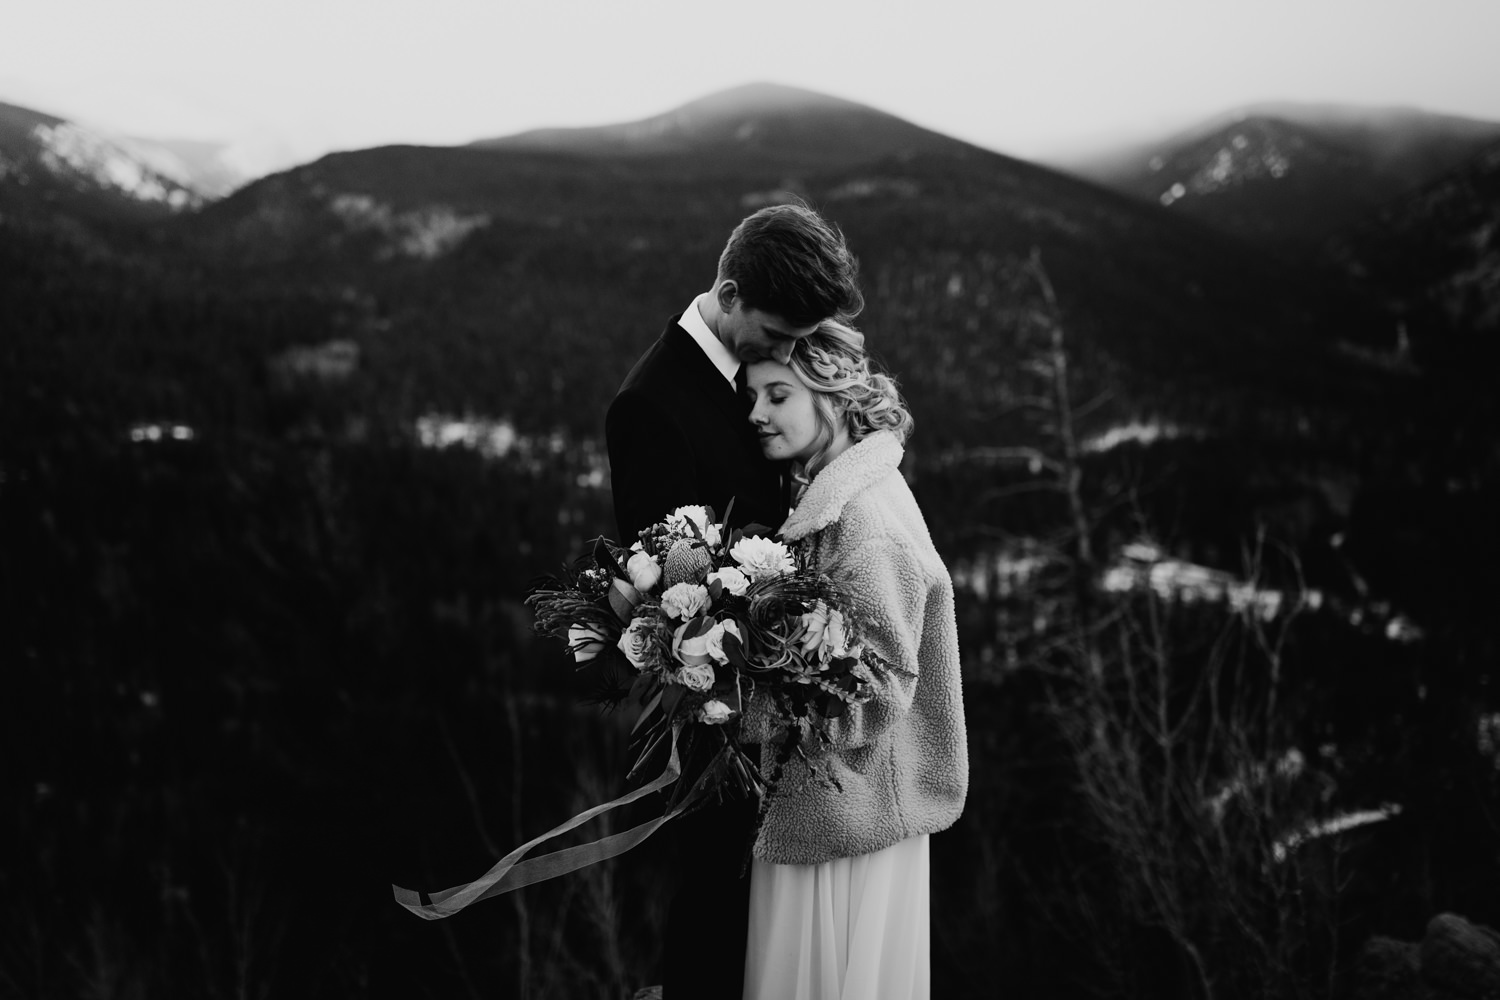 colorado-intimate-wedding-photographer-69.jpg